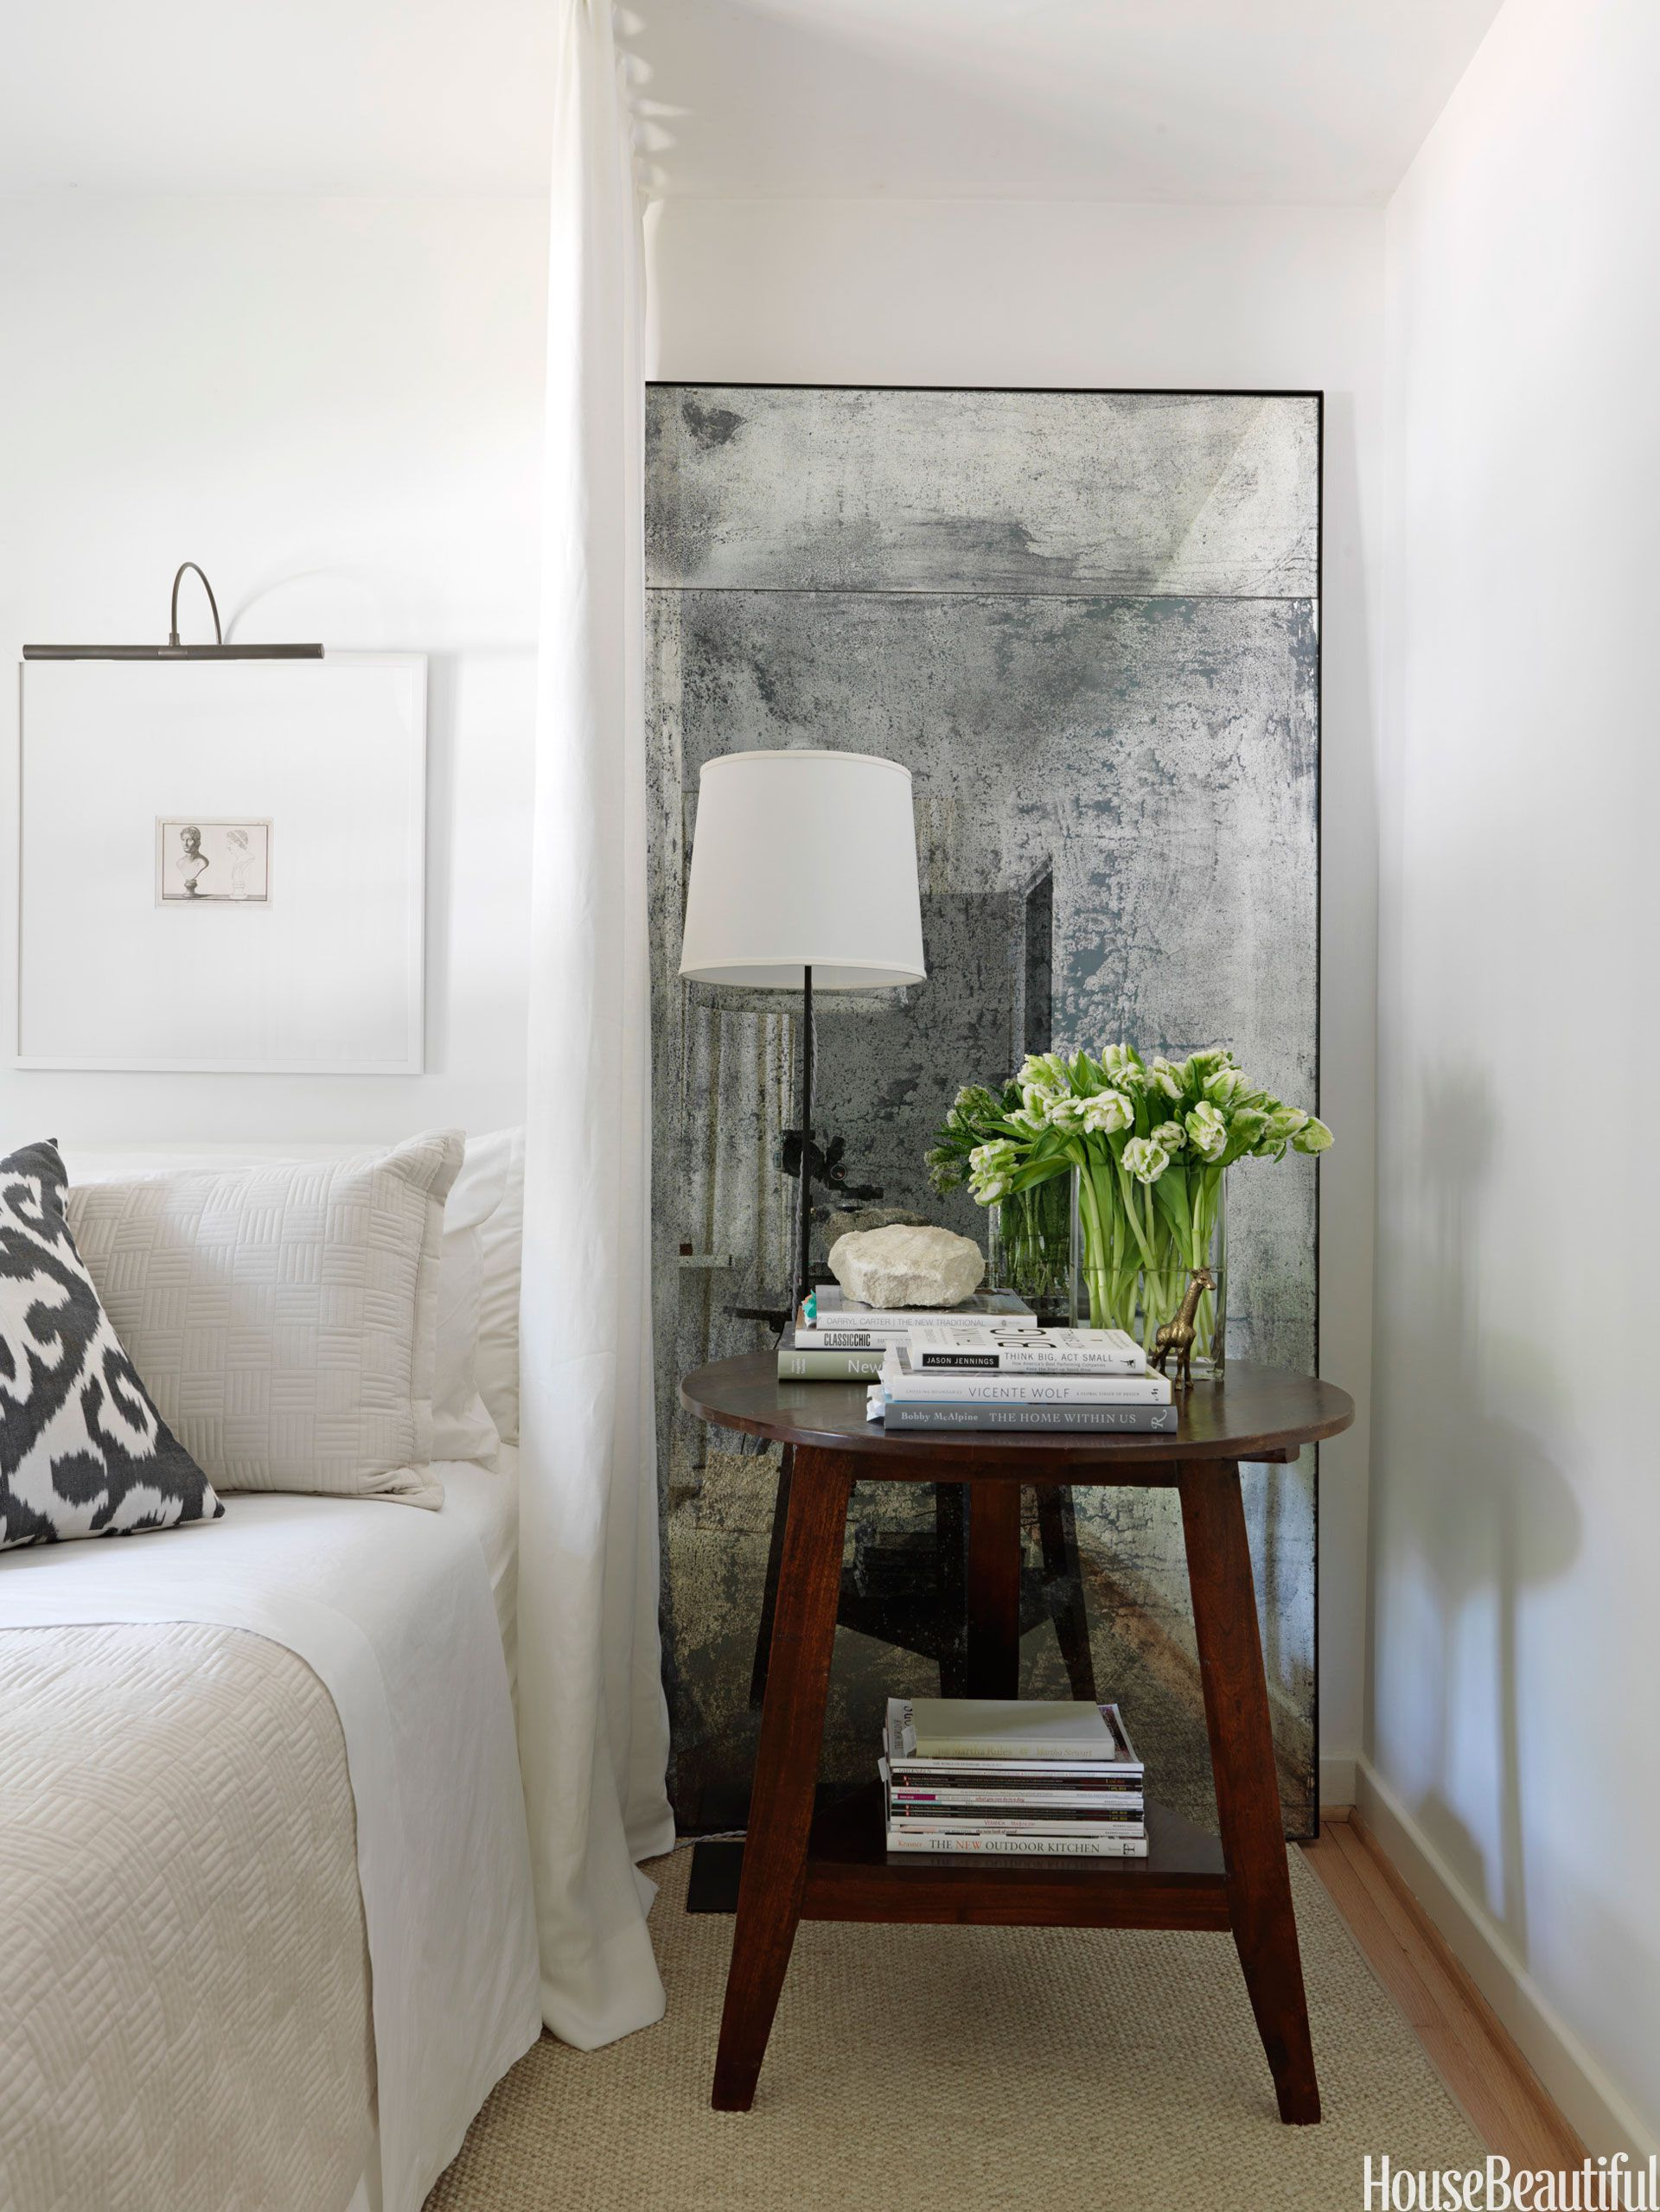 How To Brighten A Dark Room Lamp In Front Of Mirror Apartment Therapy